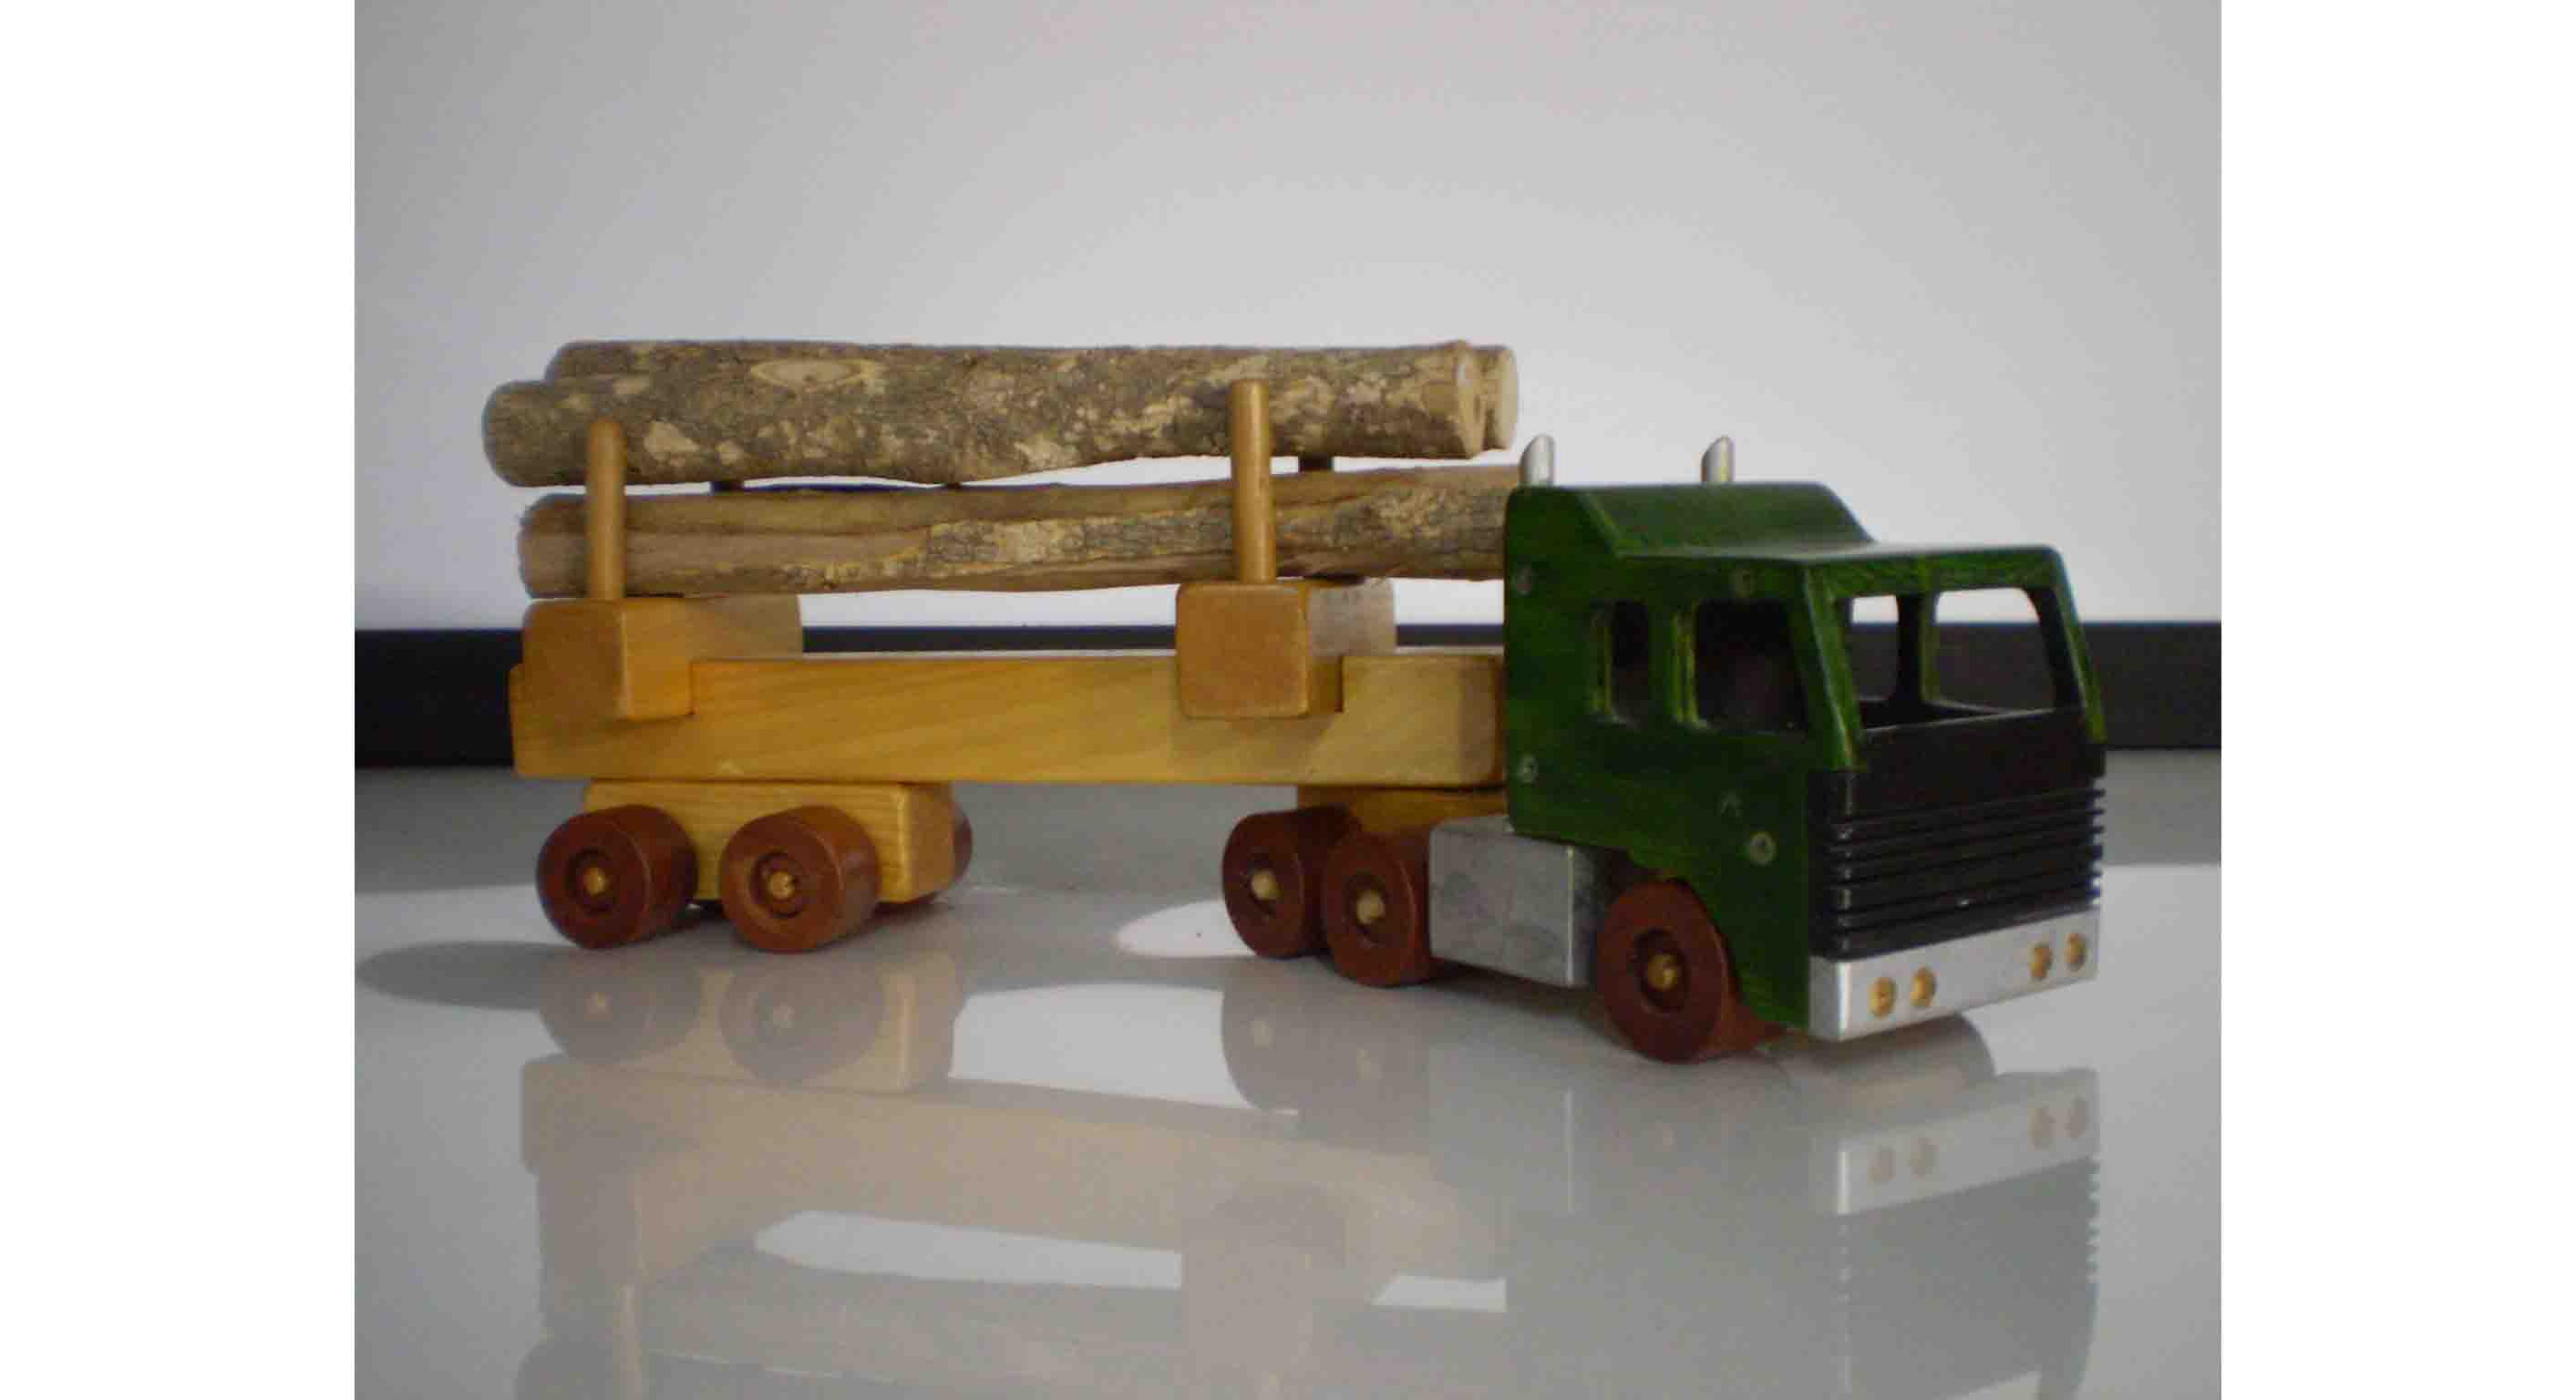 Cab Over Log truck plan